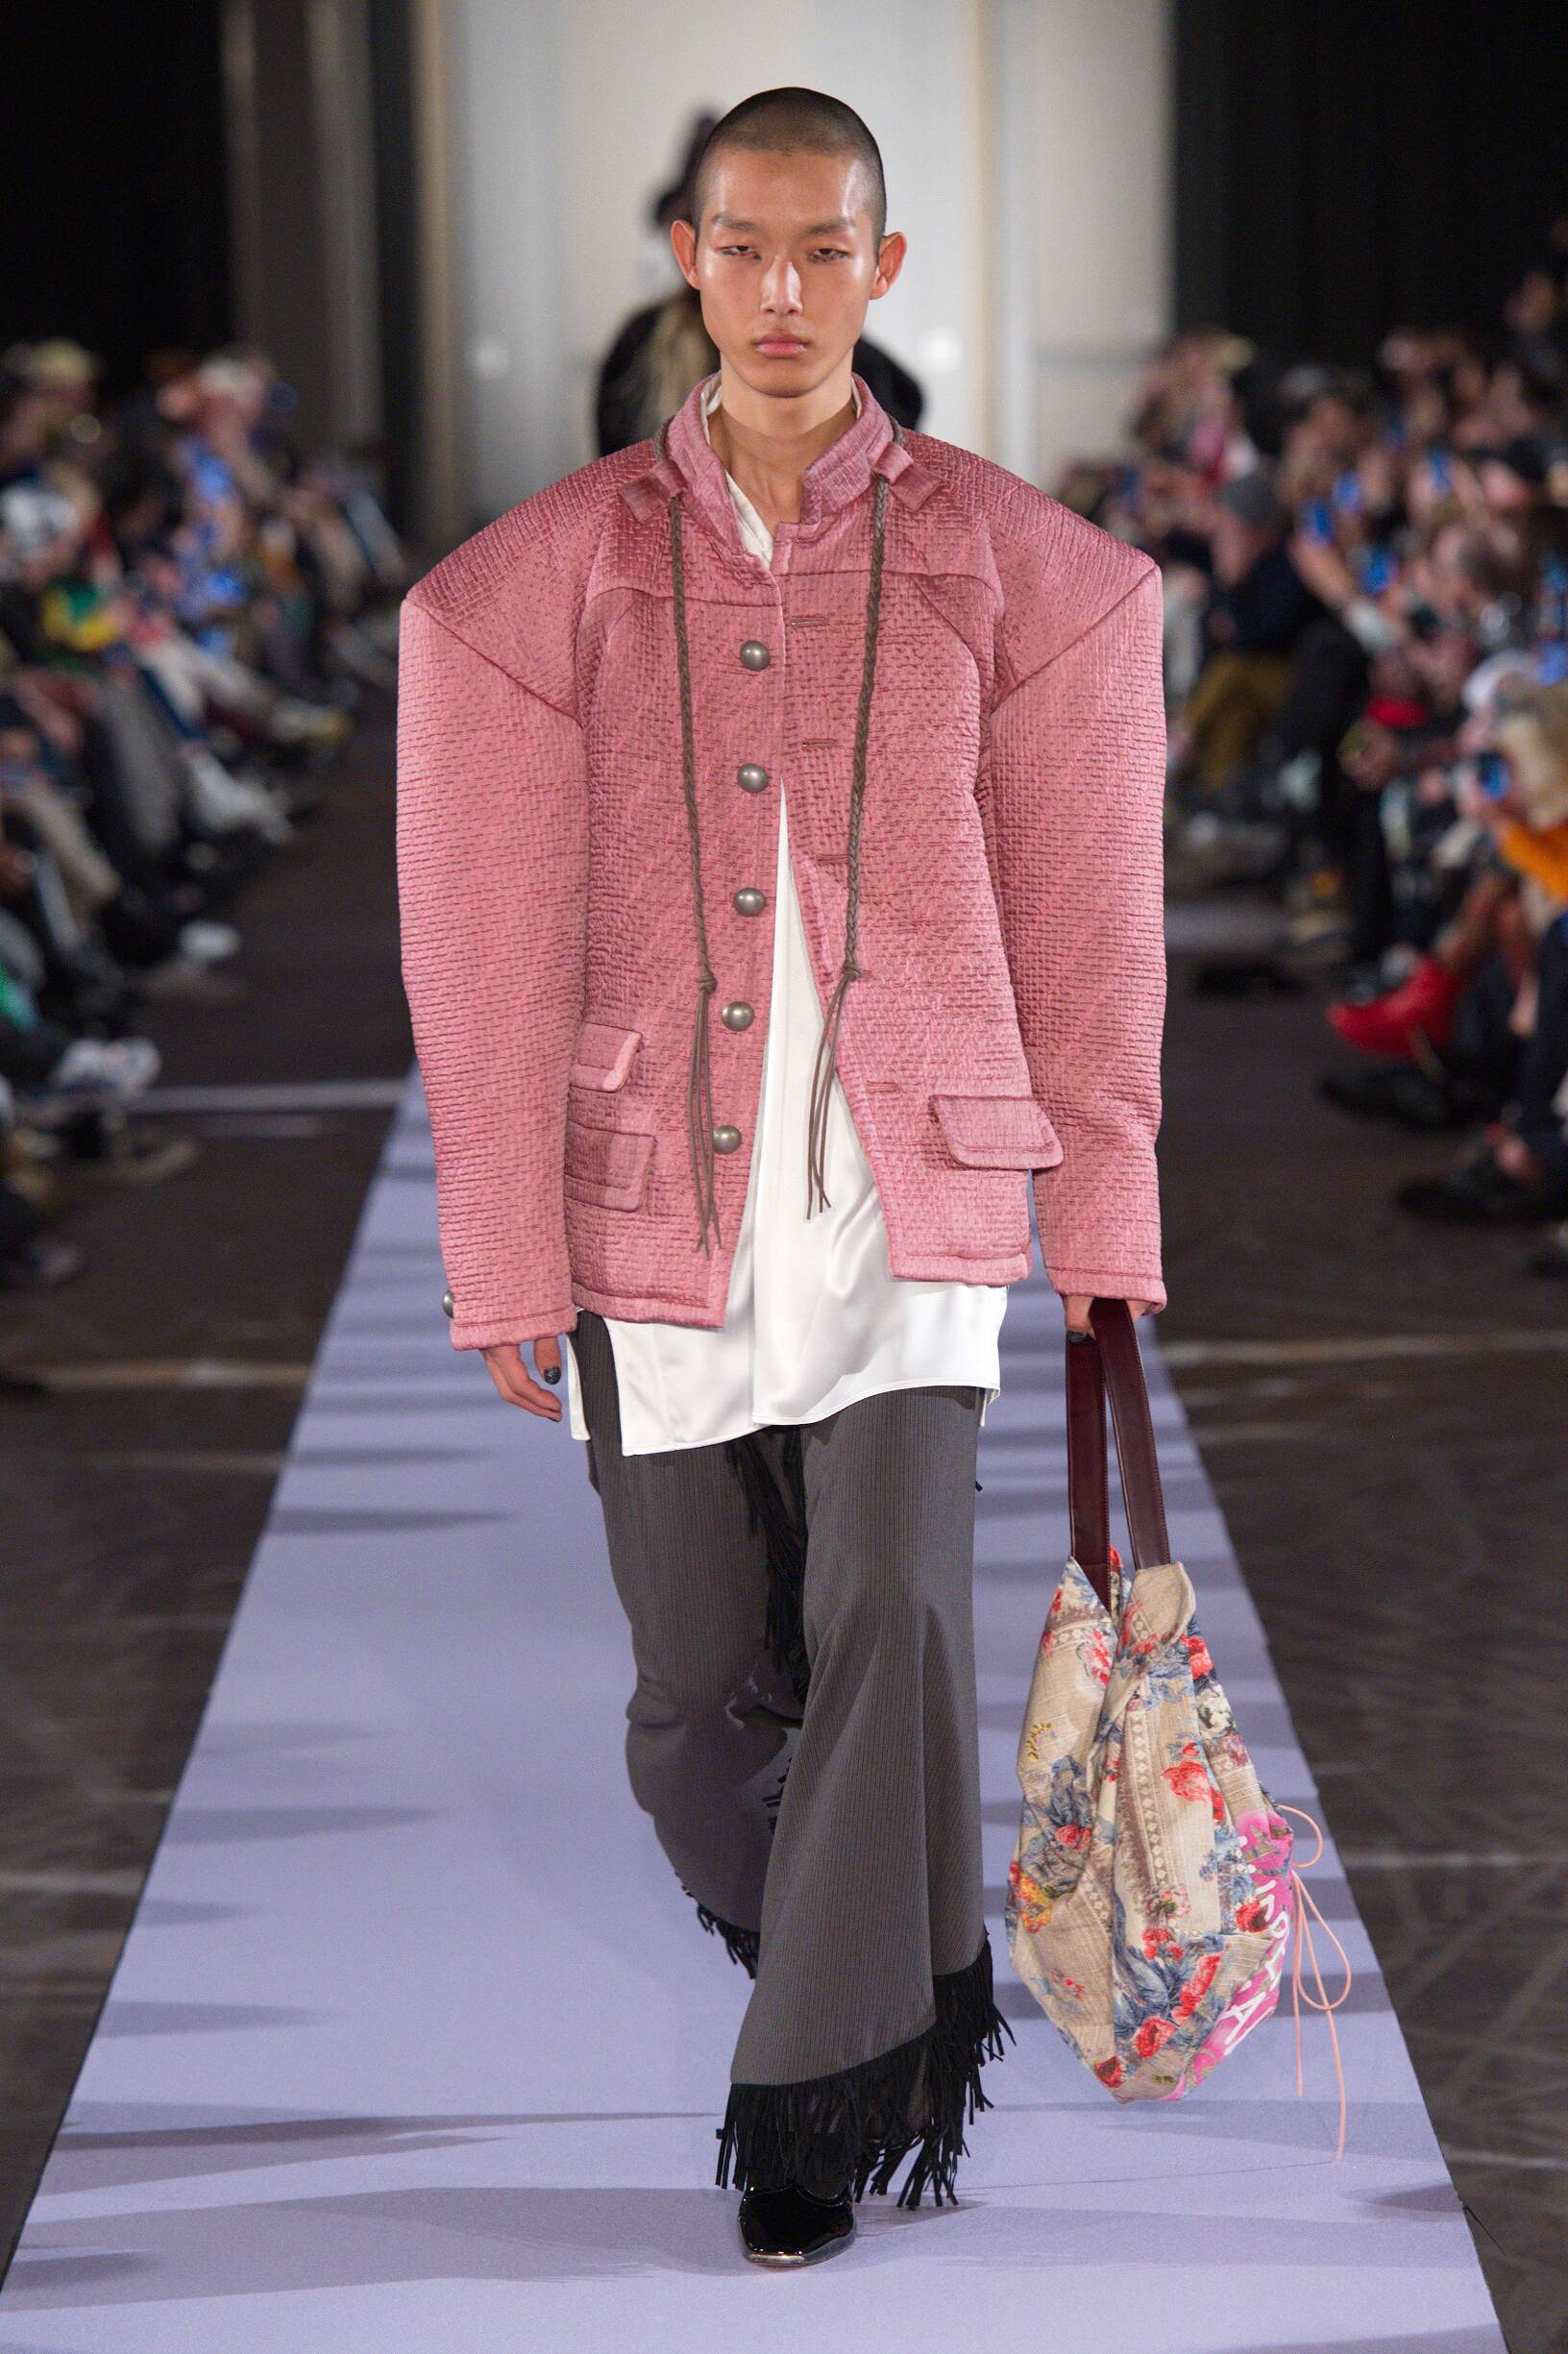 Andreas Kronthaler for Vivienne Westwood Menswear Fashion Show